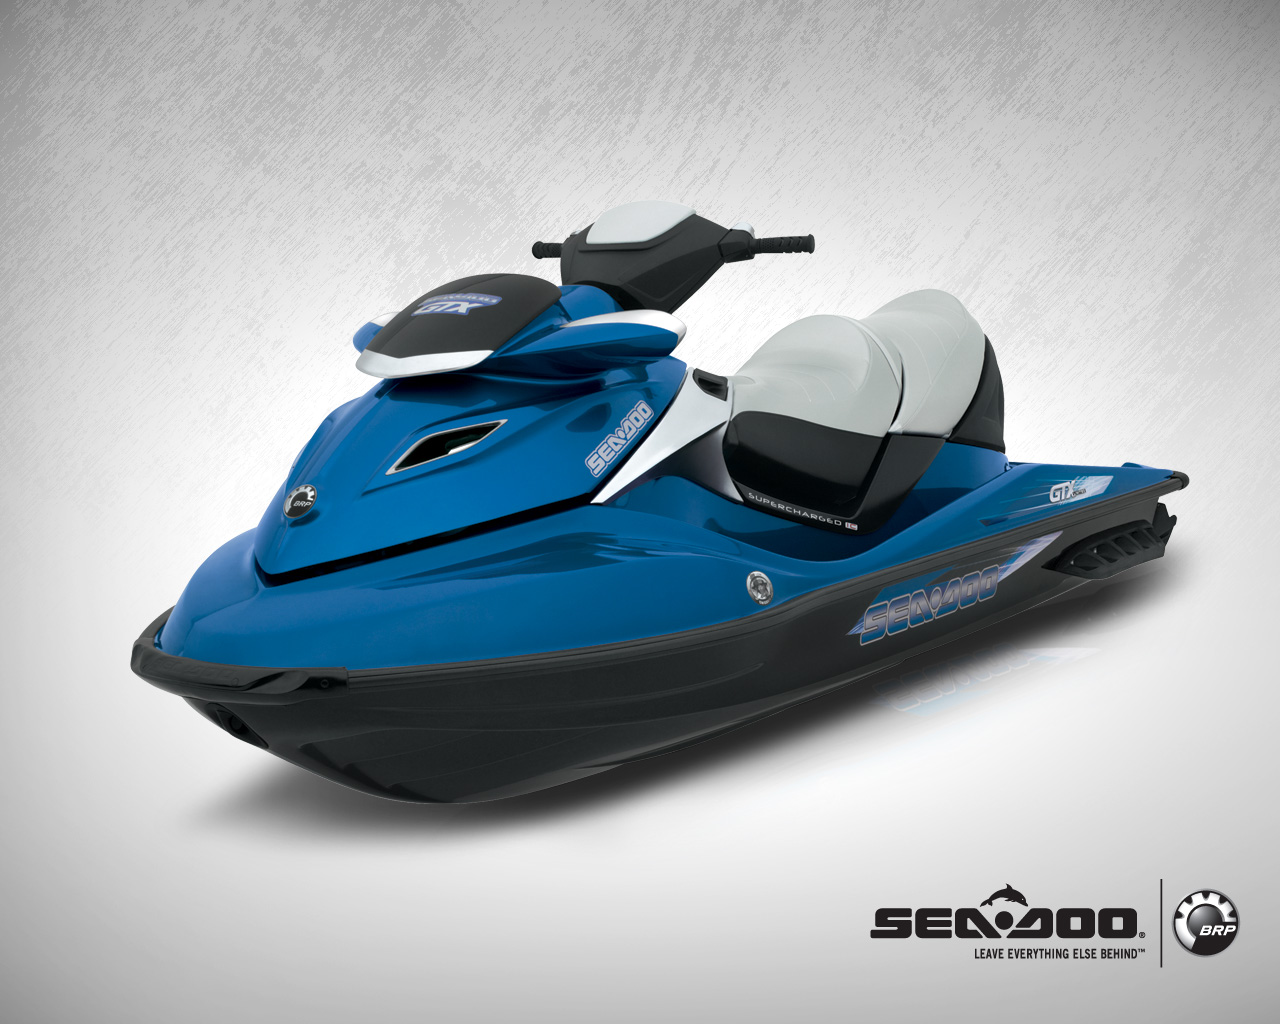 2007 sea doo gtx limited top speed rh topspeed com 2007 seadoo rxp 215 owner's manual Sea-Doo RXT 260